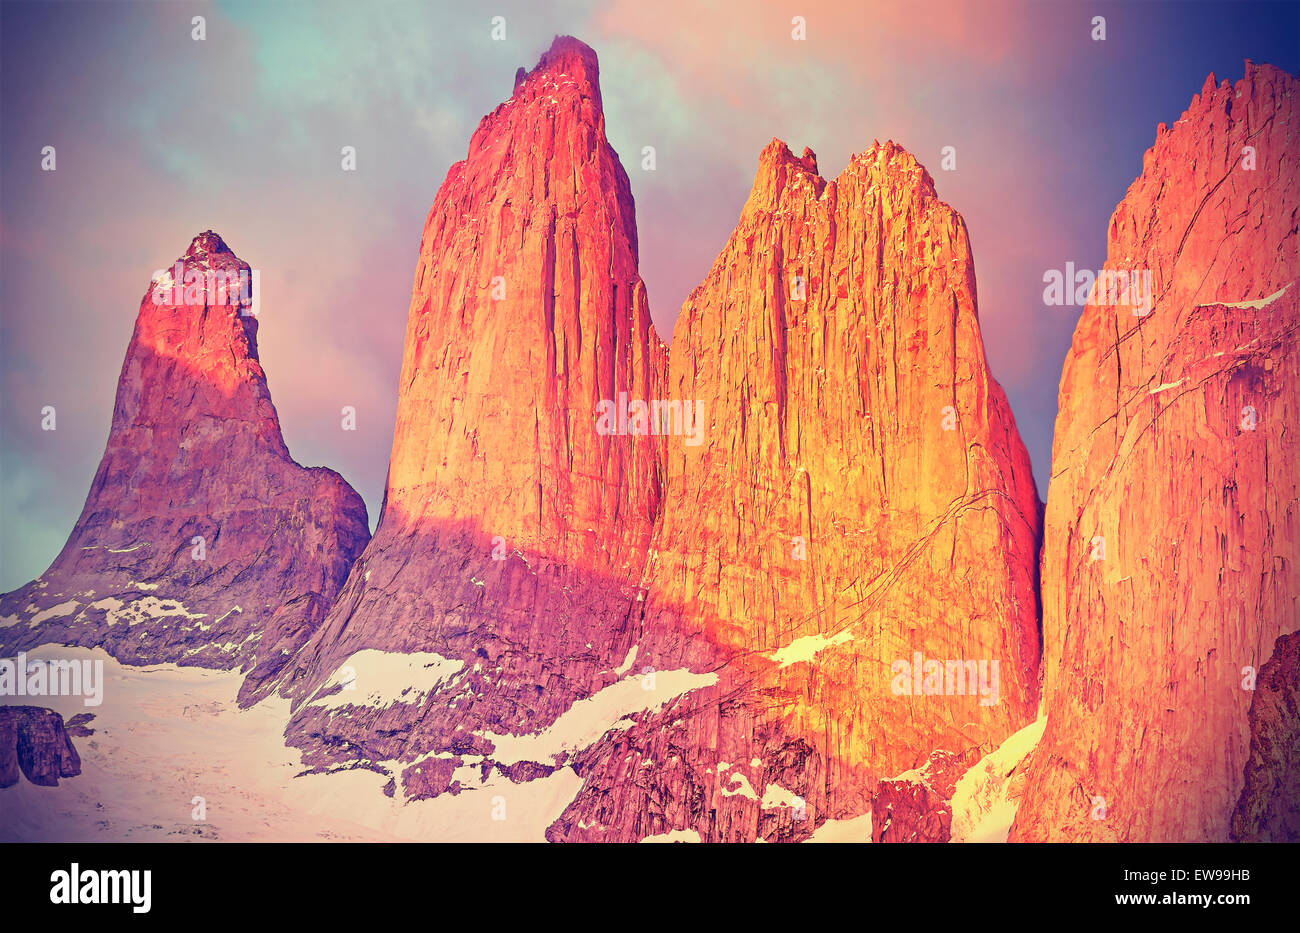 Sunrise over Torres del Paine mountains, Patagonia, Chile. - Stock Image